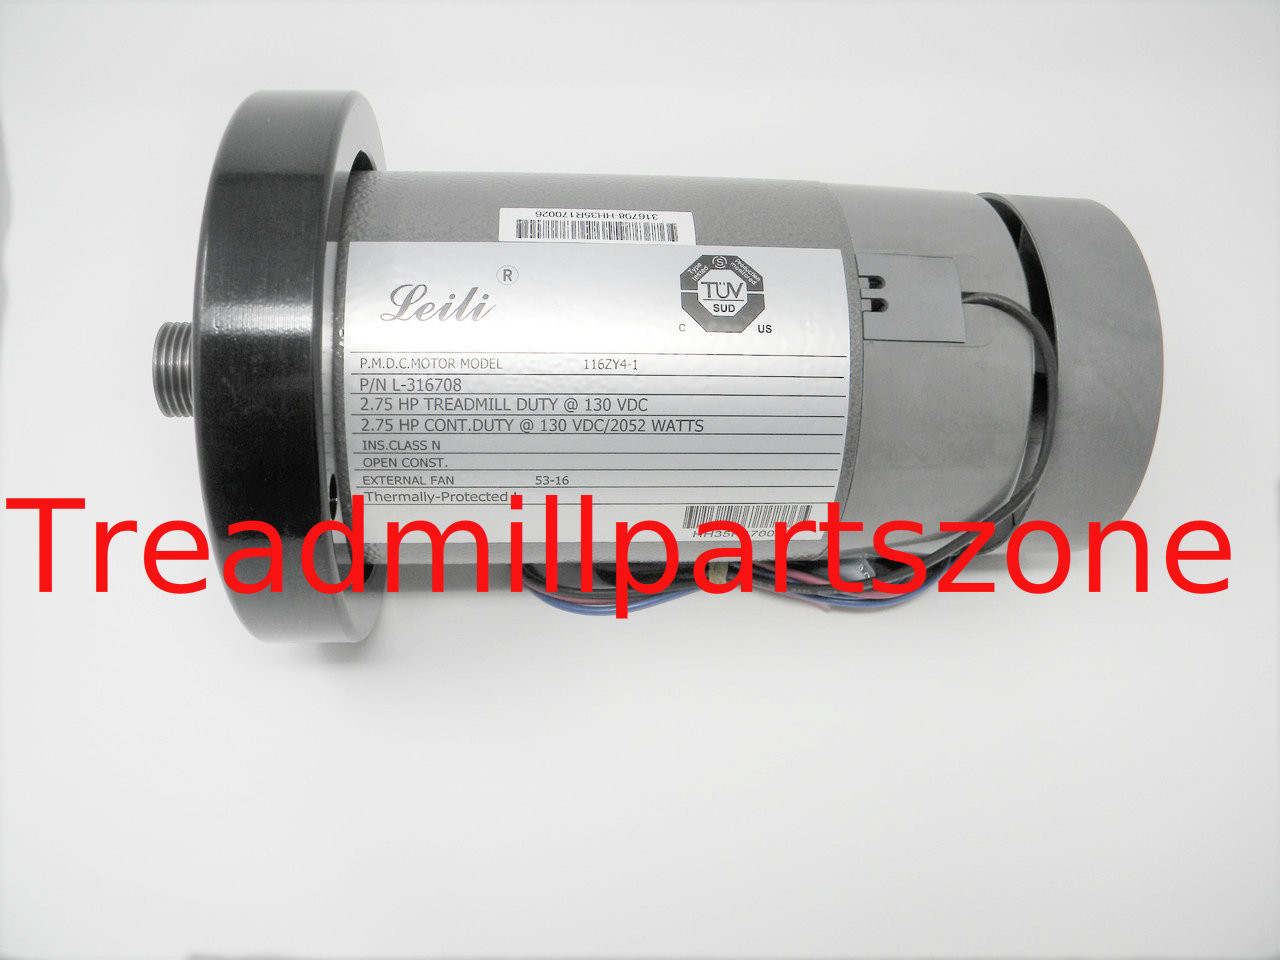 Treadmill Drive Motor Part Number 405686